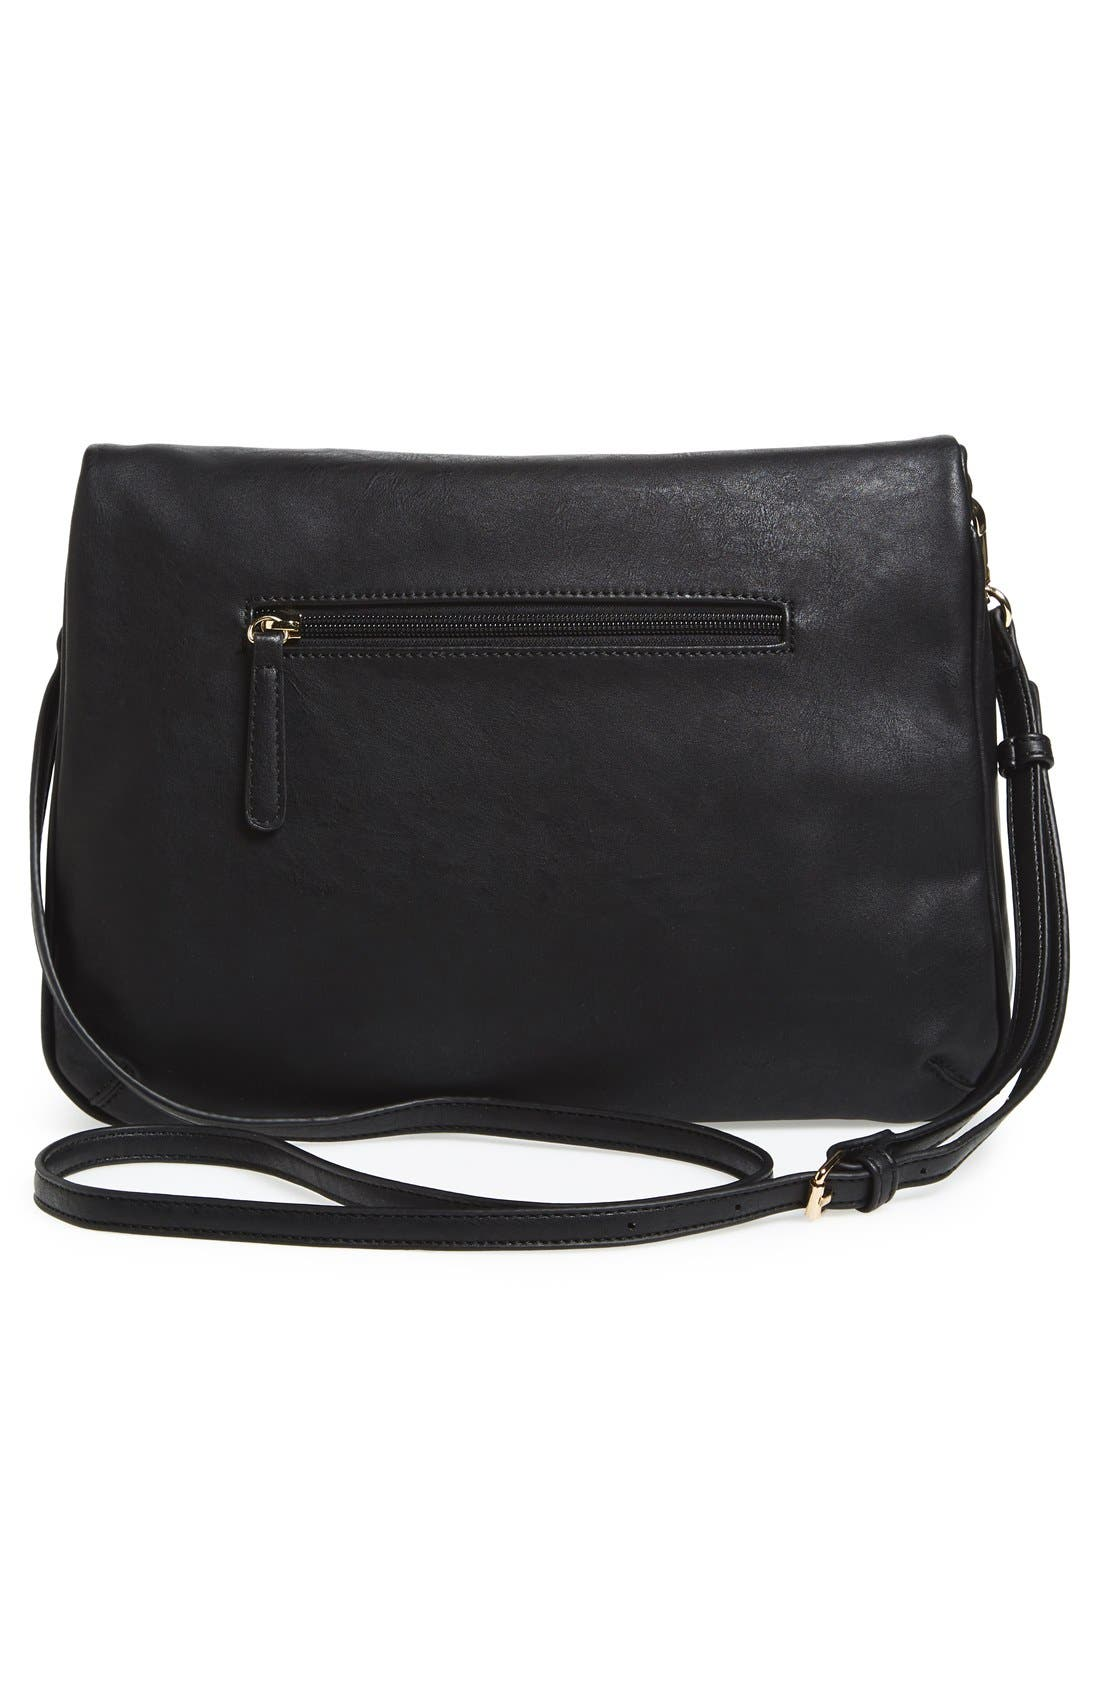 Alternate Image 3  - BP. Foldover Crossbody Bag